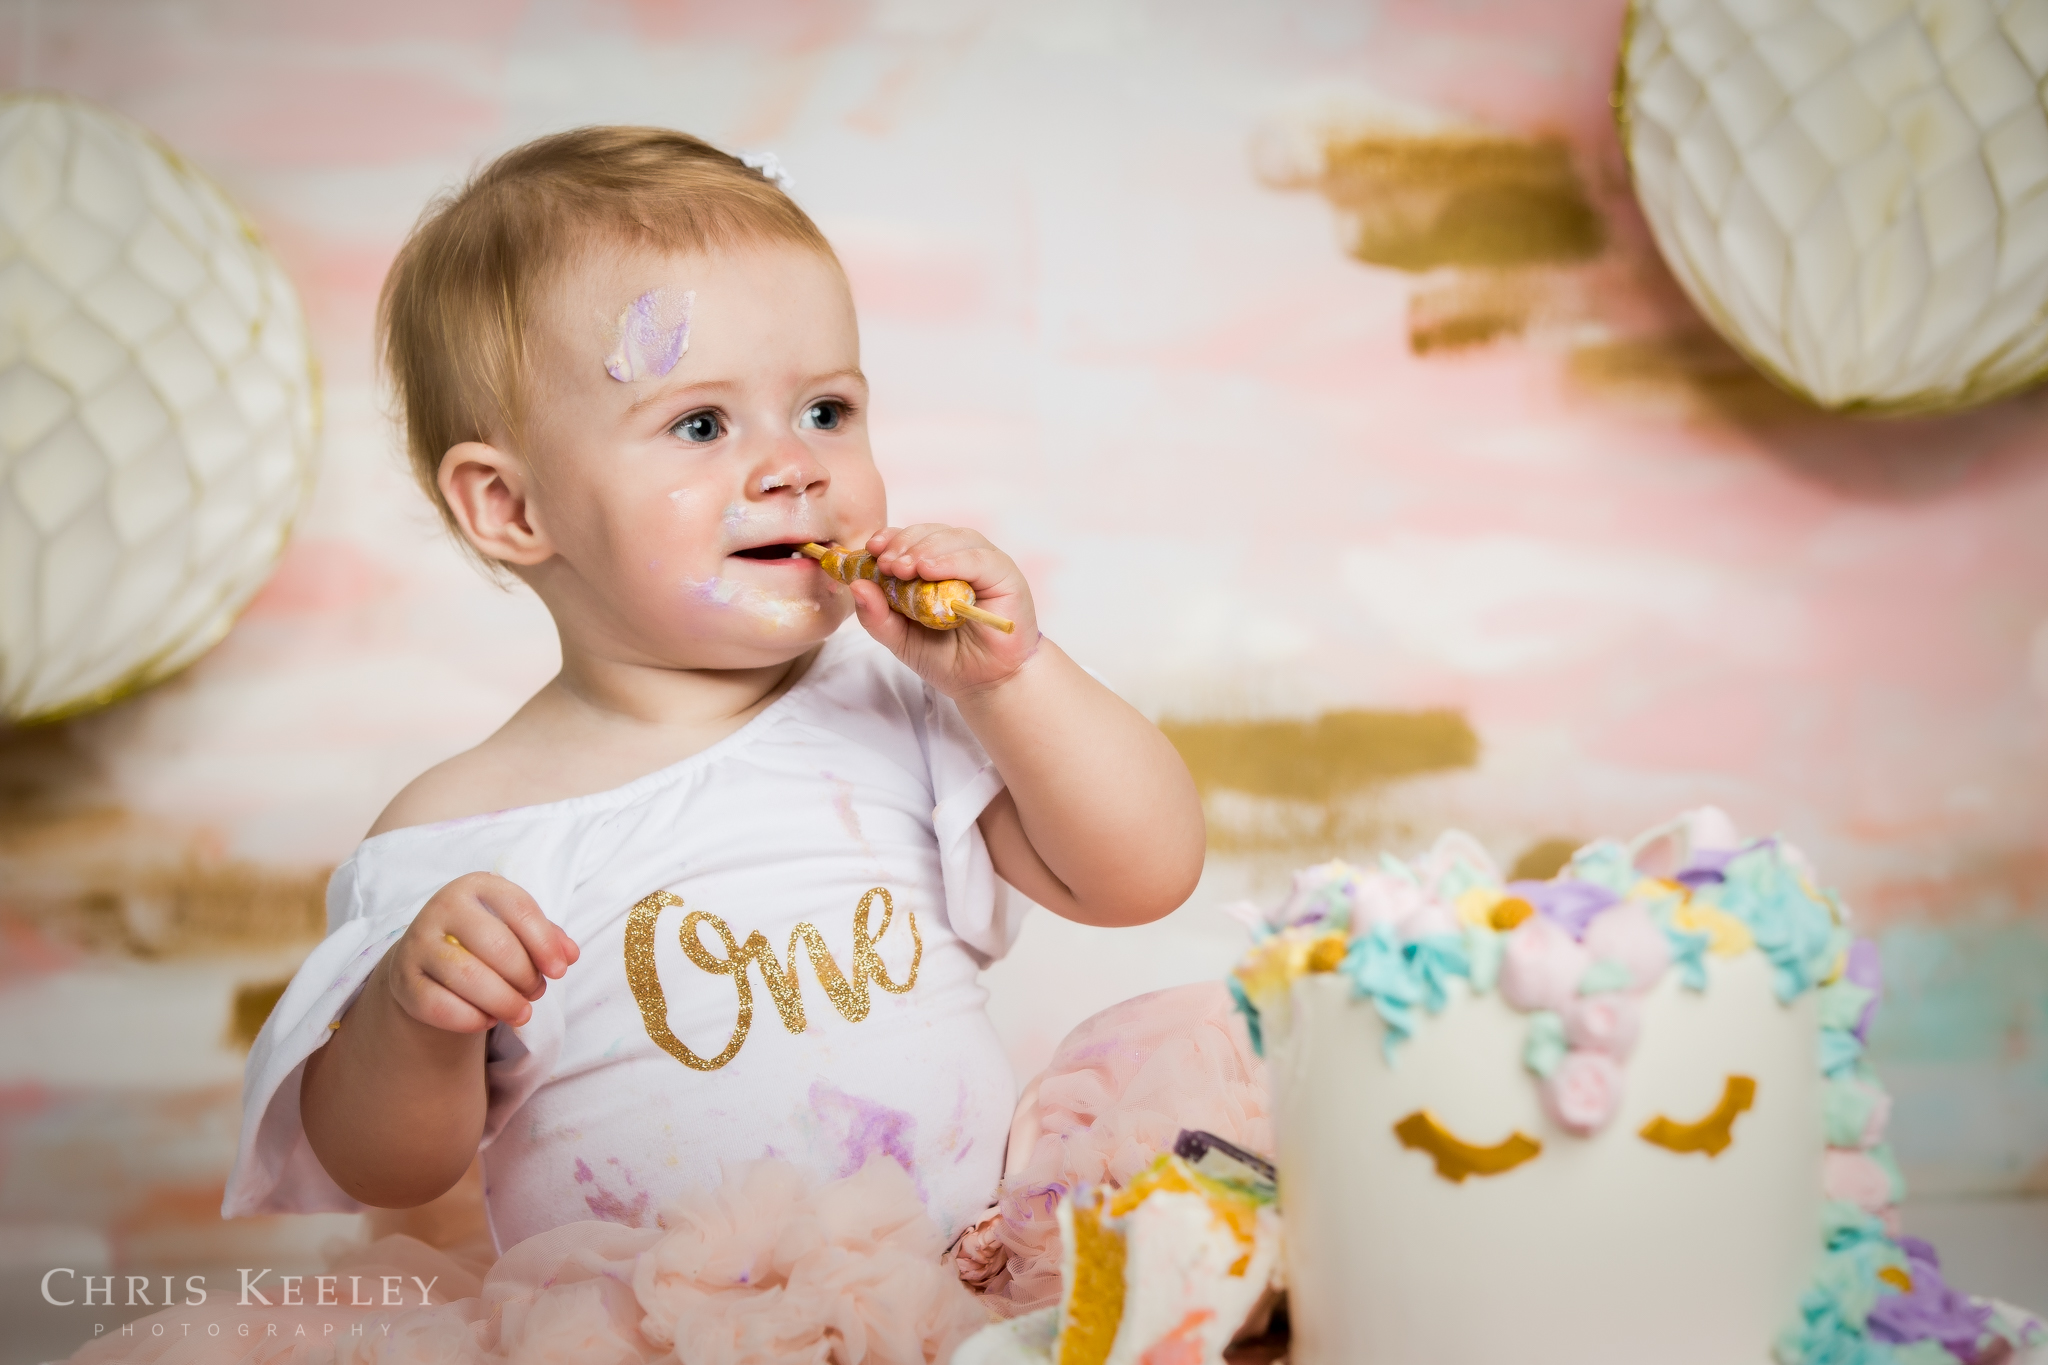 gwendolyn-one-year-cake-smash-dover-new-hampshire-photographer-12.jpg